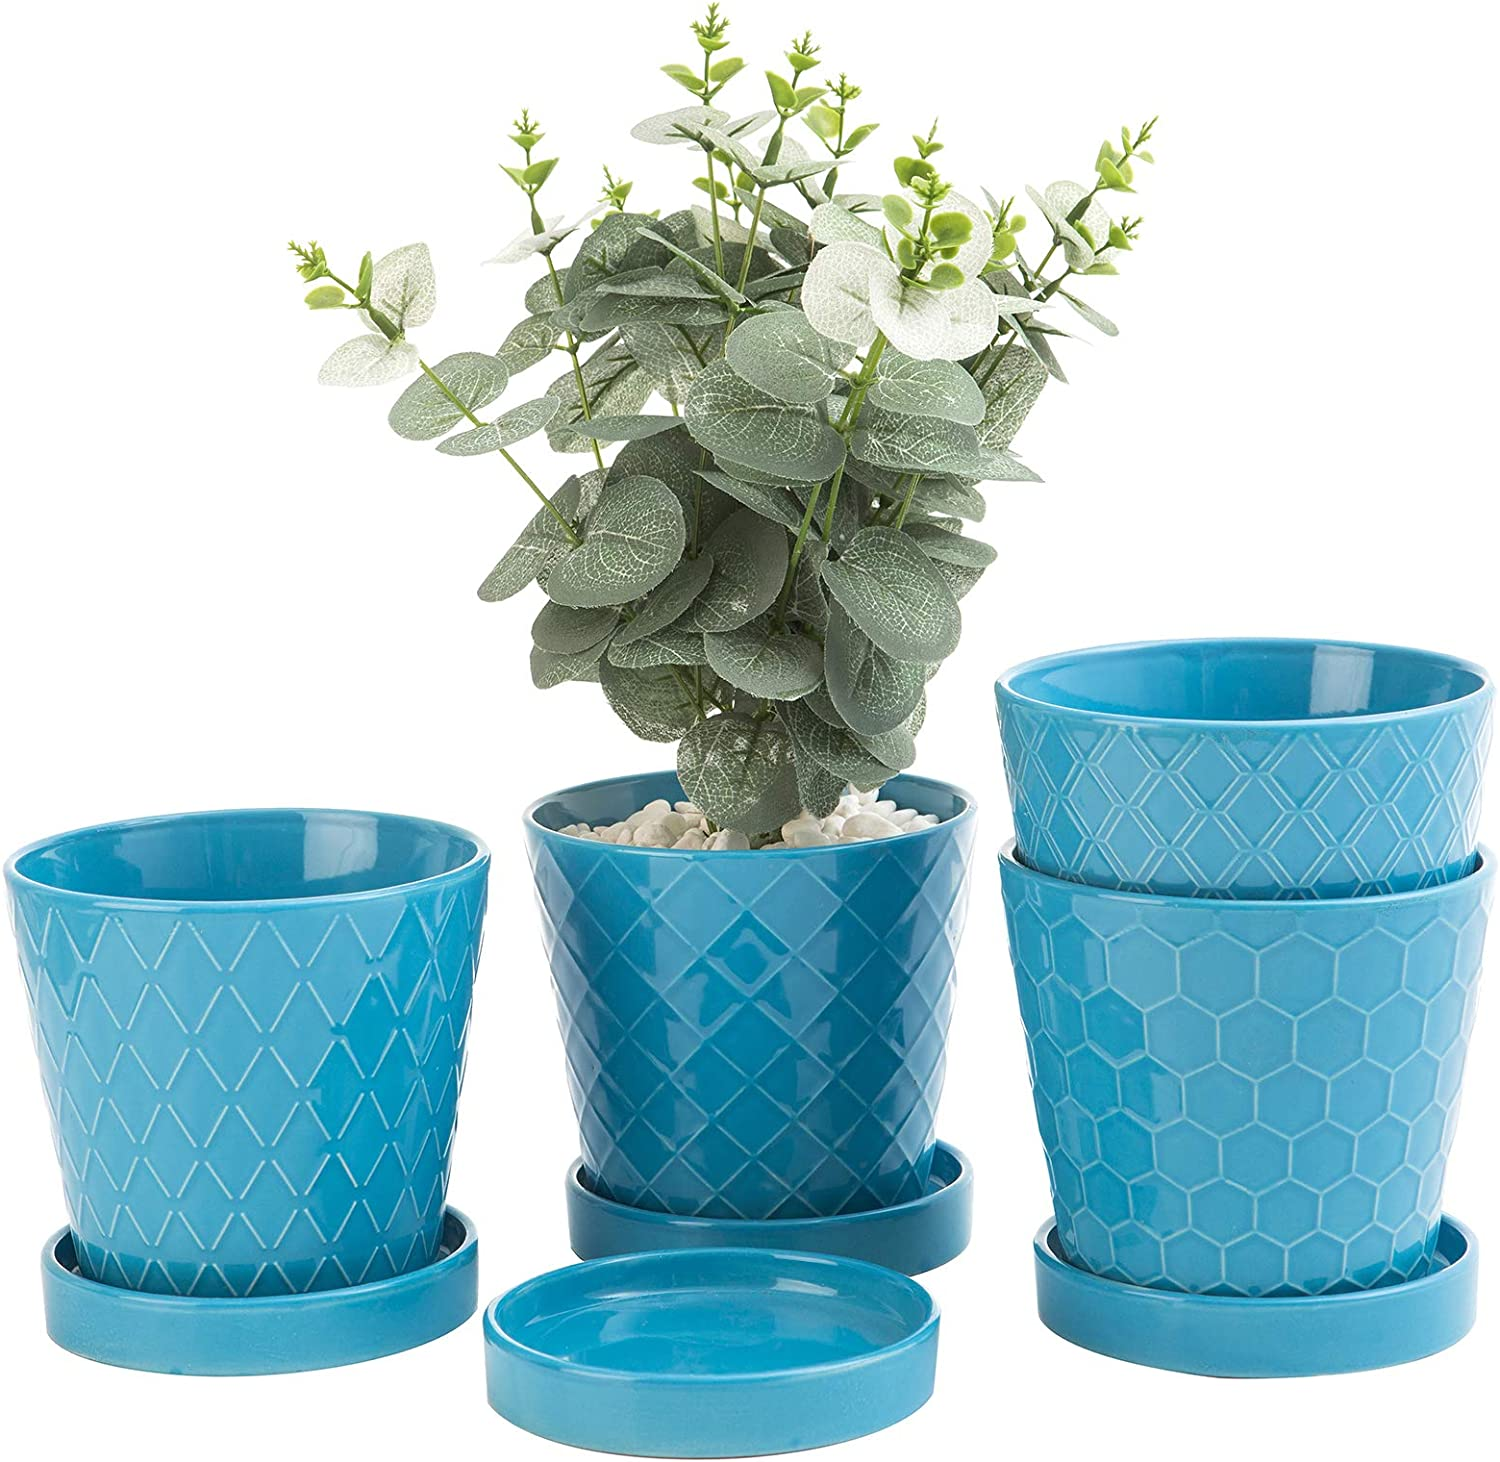 EFISPSS Flower Planter –5 inch Ceramic Plant Pots with Drainage Holes and Ceramic Tray - Gardening Home Desktop Office Windowsill Decoration Gift Set of 4 - Plants NOT Included (Blue)